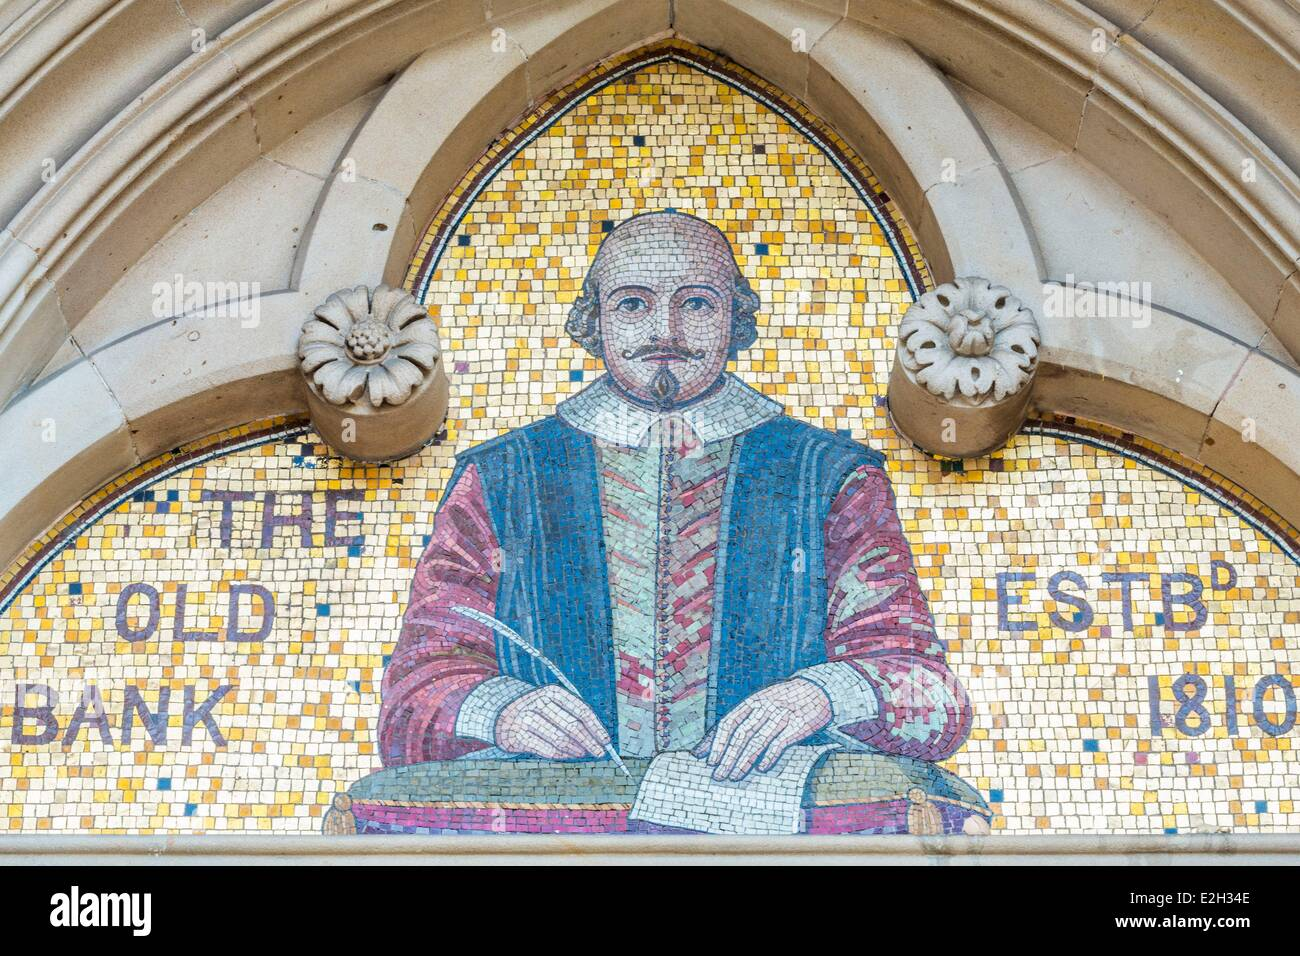 United Kingdom Warwickshire Stratford-upon-Avon Old Bank 1883 and pediment with a mosaic representing William Shakespeare Stock Photo